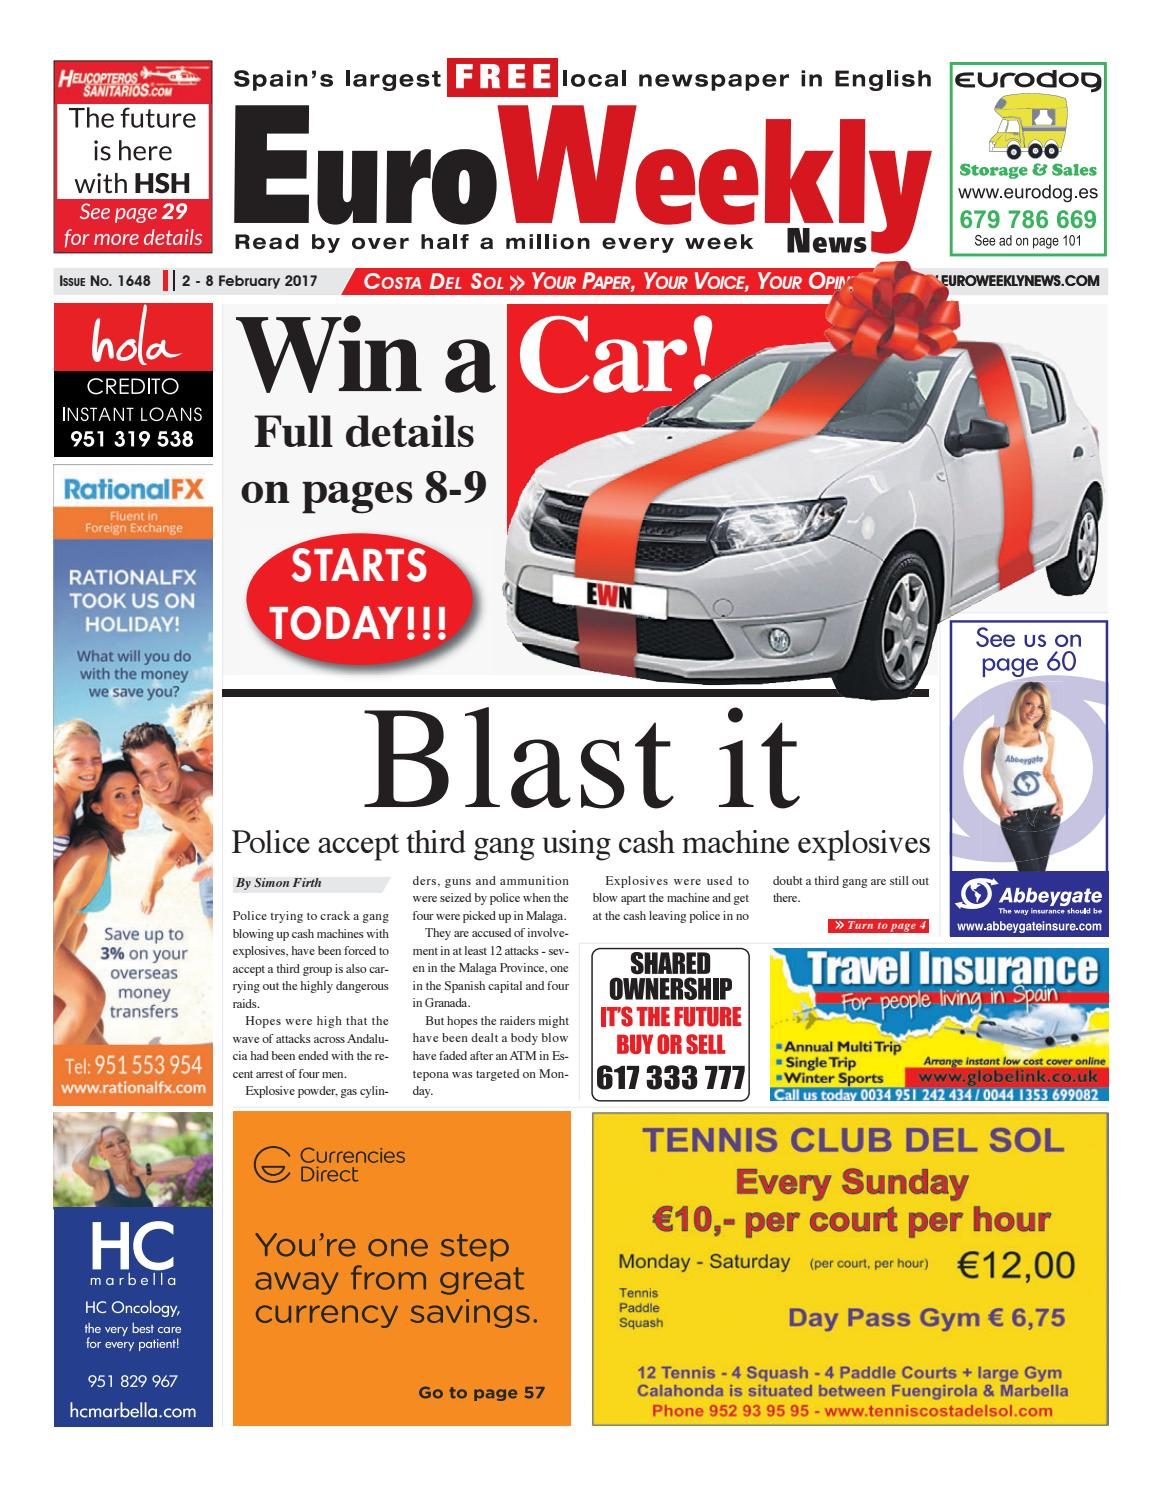 Euro weekly news costa del sol 2 8 february 2017 issue 1648 by euro weekly news costa del sol 2 8 february 2017 issue 1648 by euro weekly news media sa issuu fandeluxe Image collections